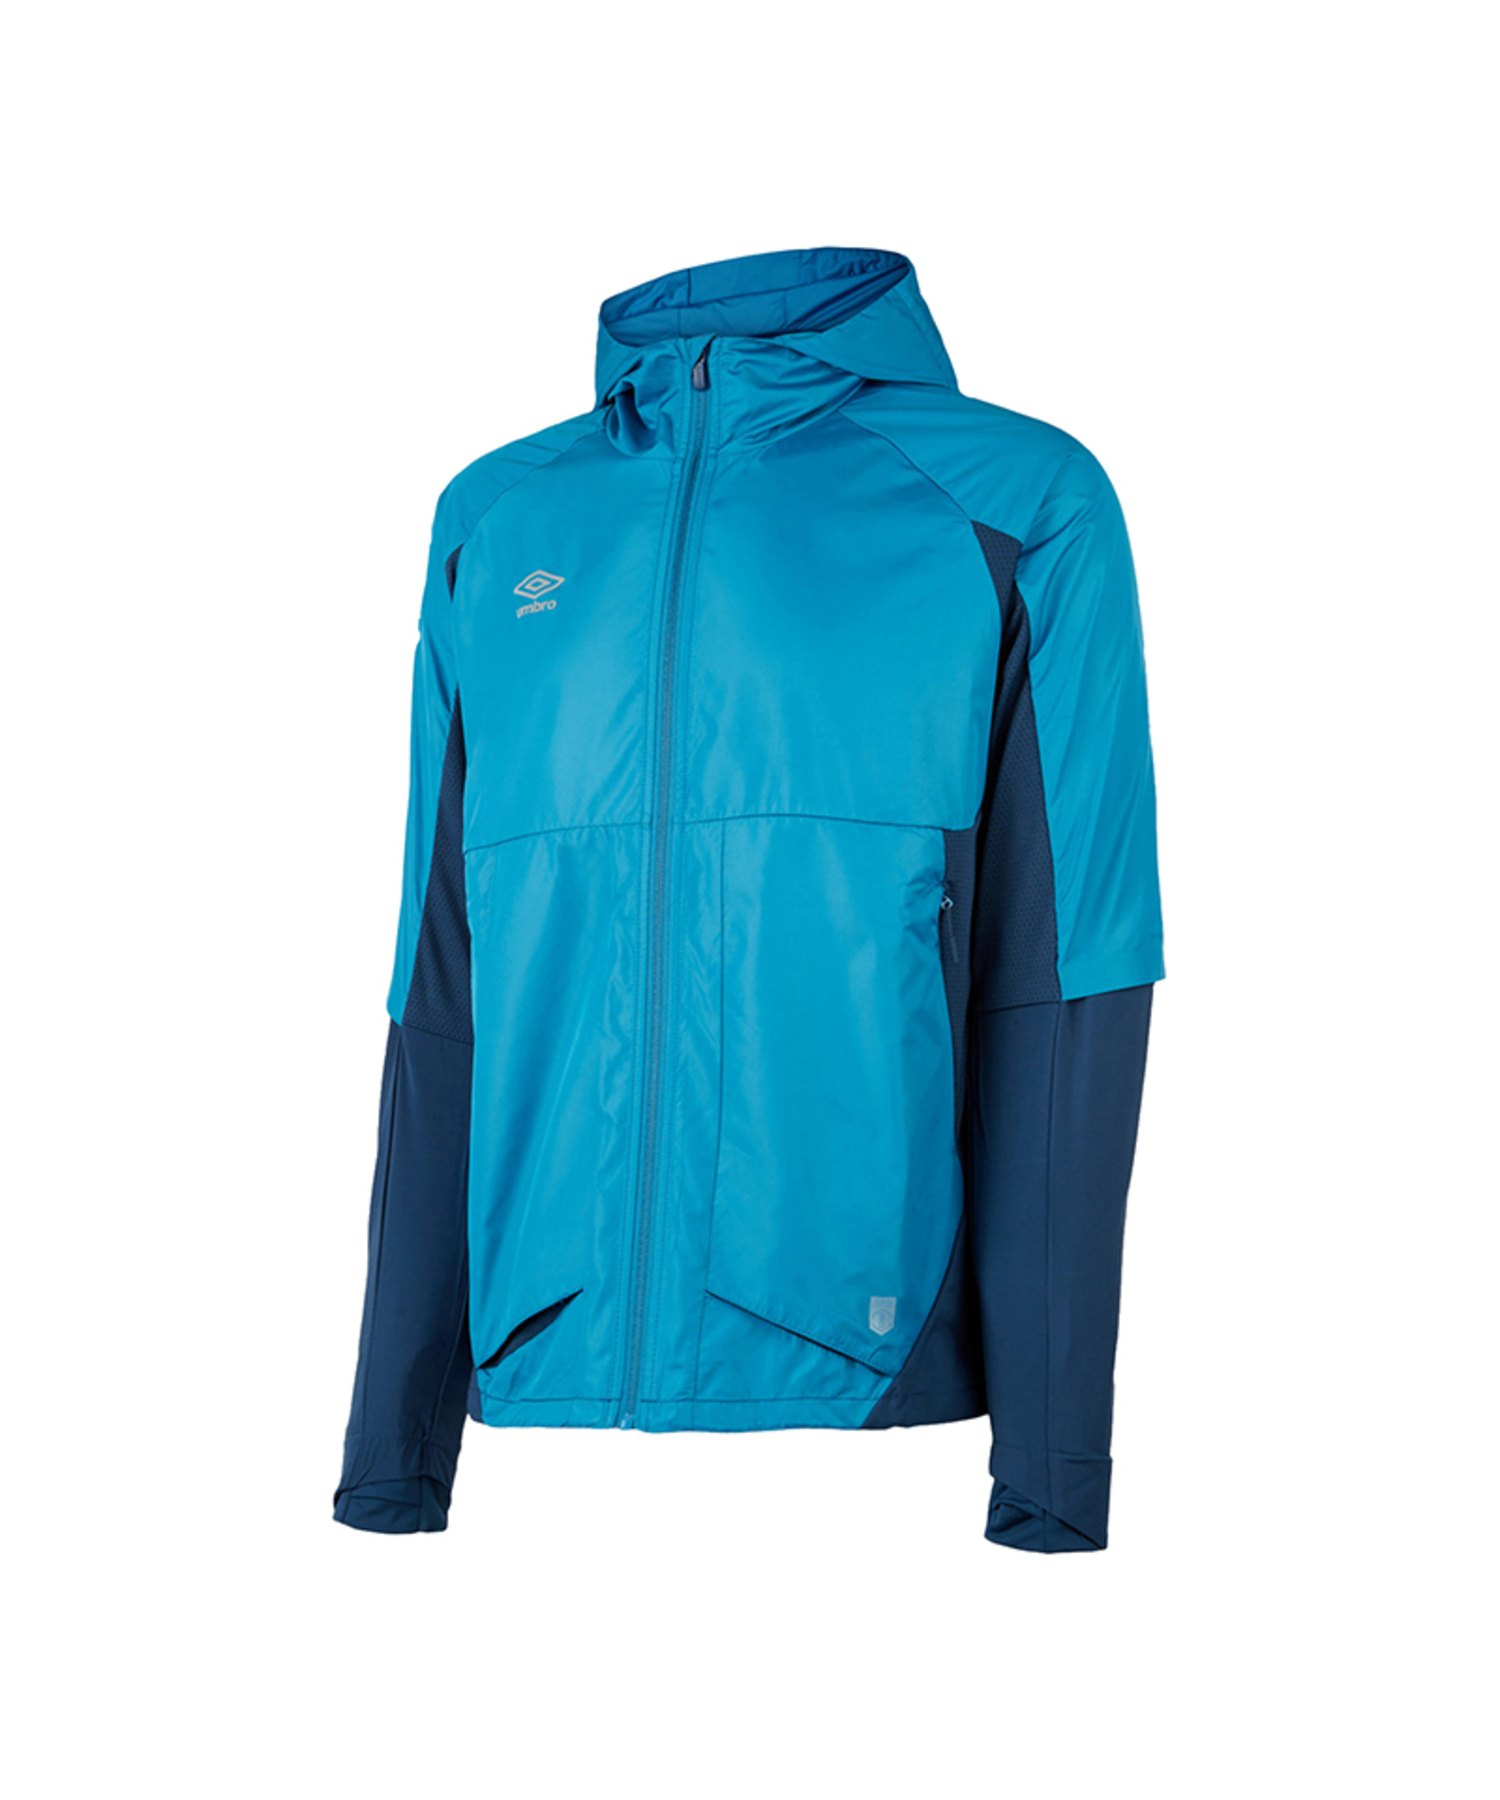 Umbro Elite Training Hybrid Jacke Blau FHG7 - Blau